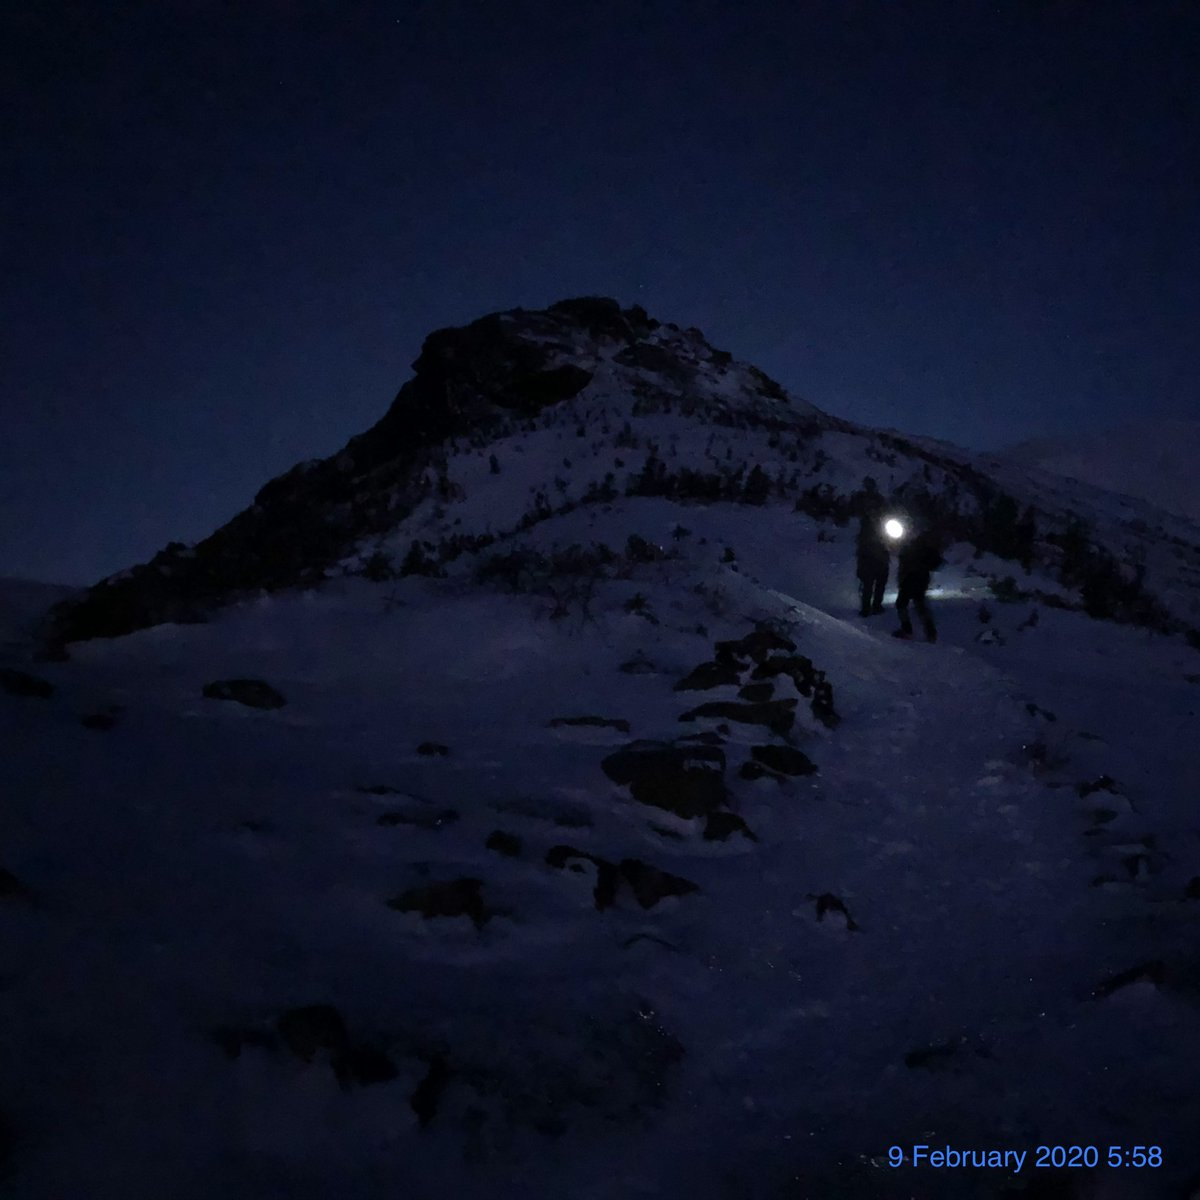 Full moon, blue light, & chilled air at -20ºC on ascent to Mount Washington